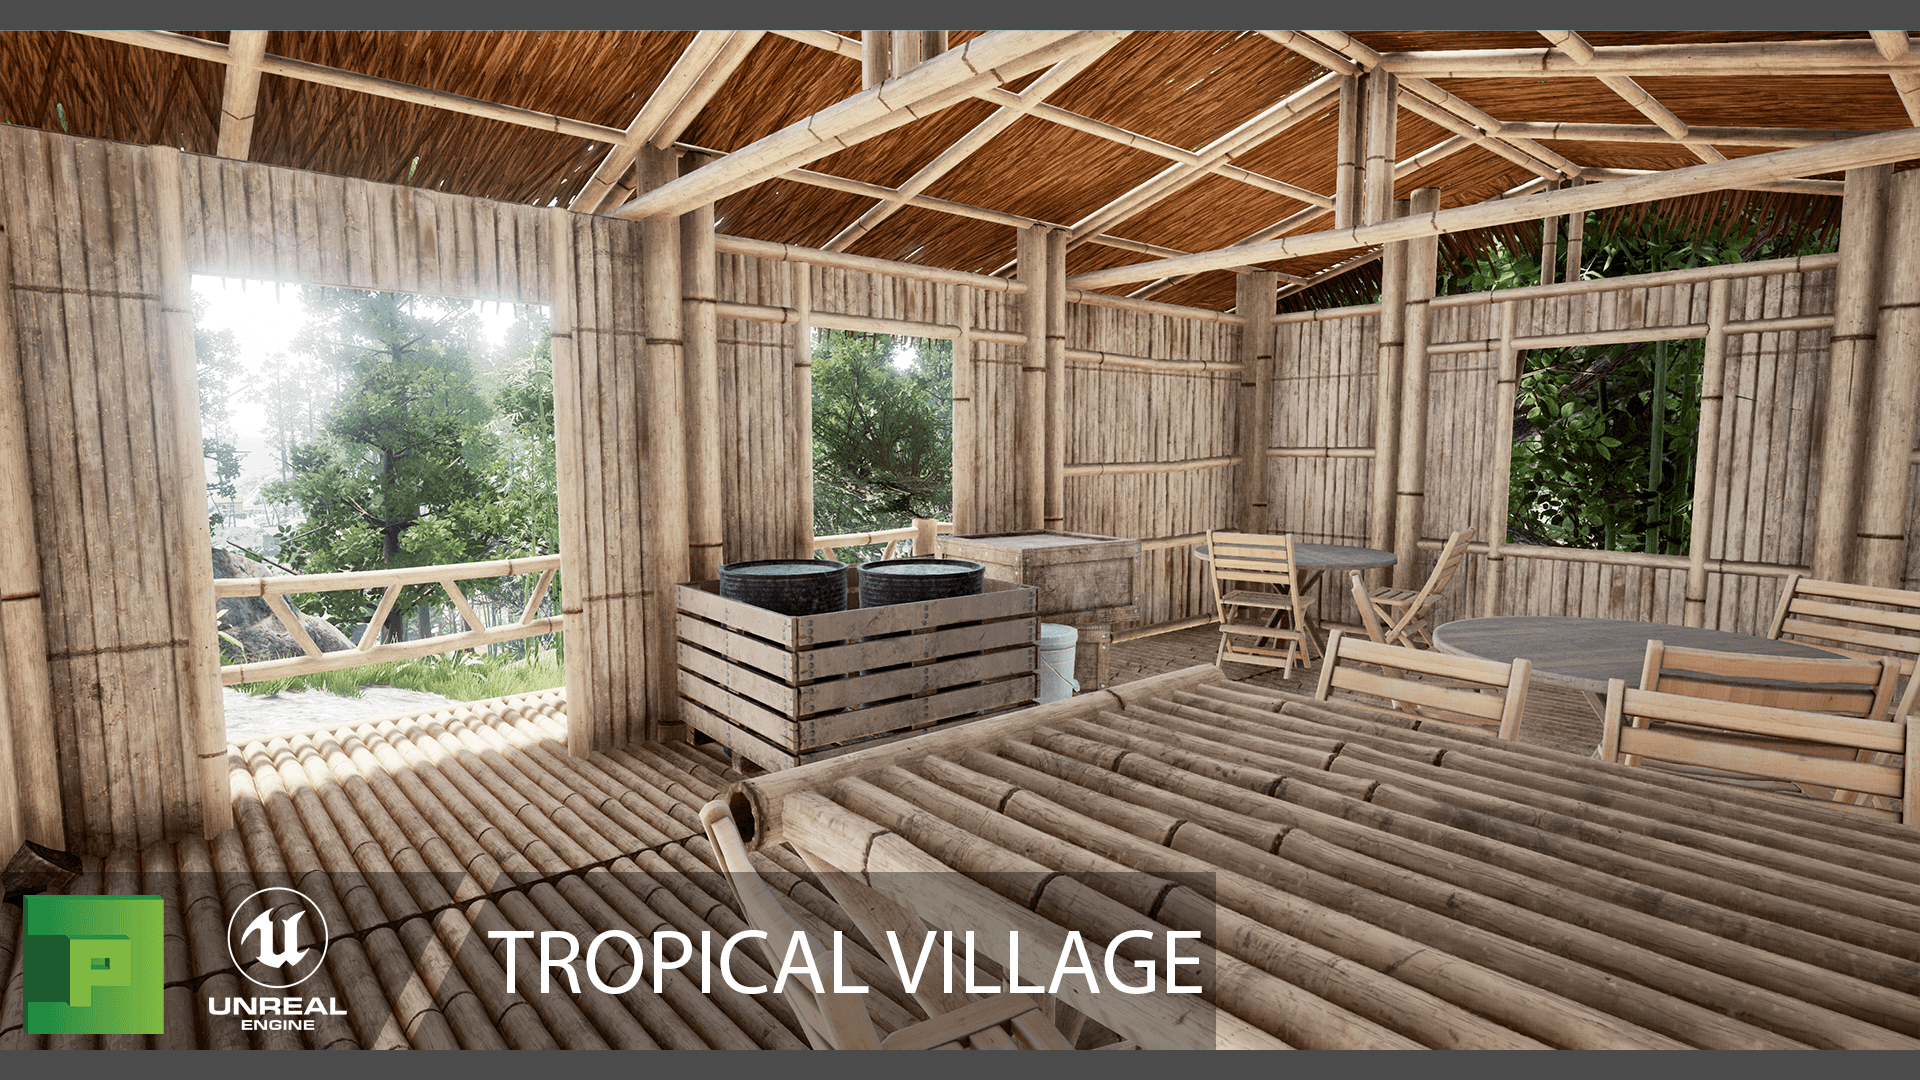 TropicalVillage_09